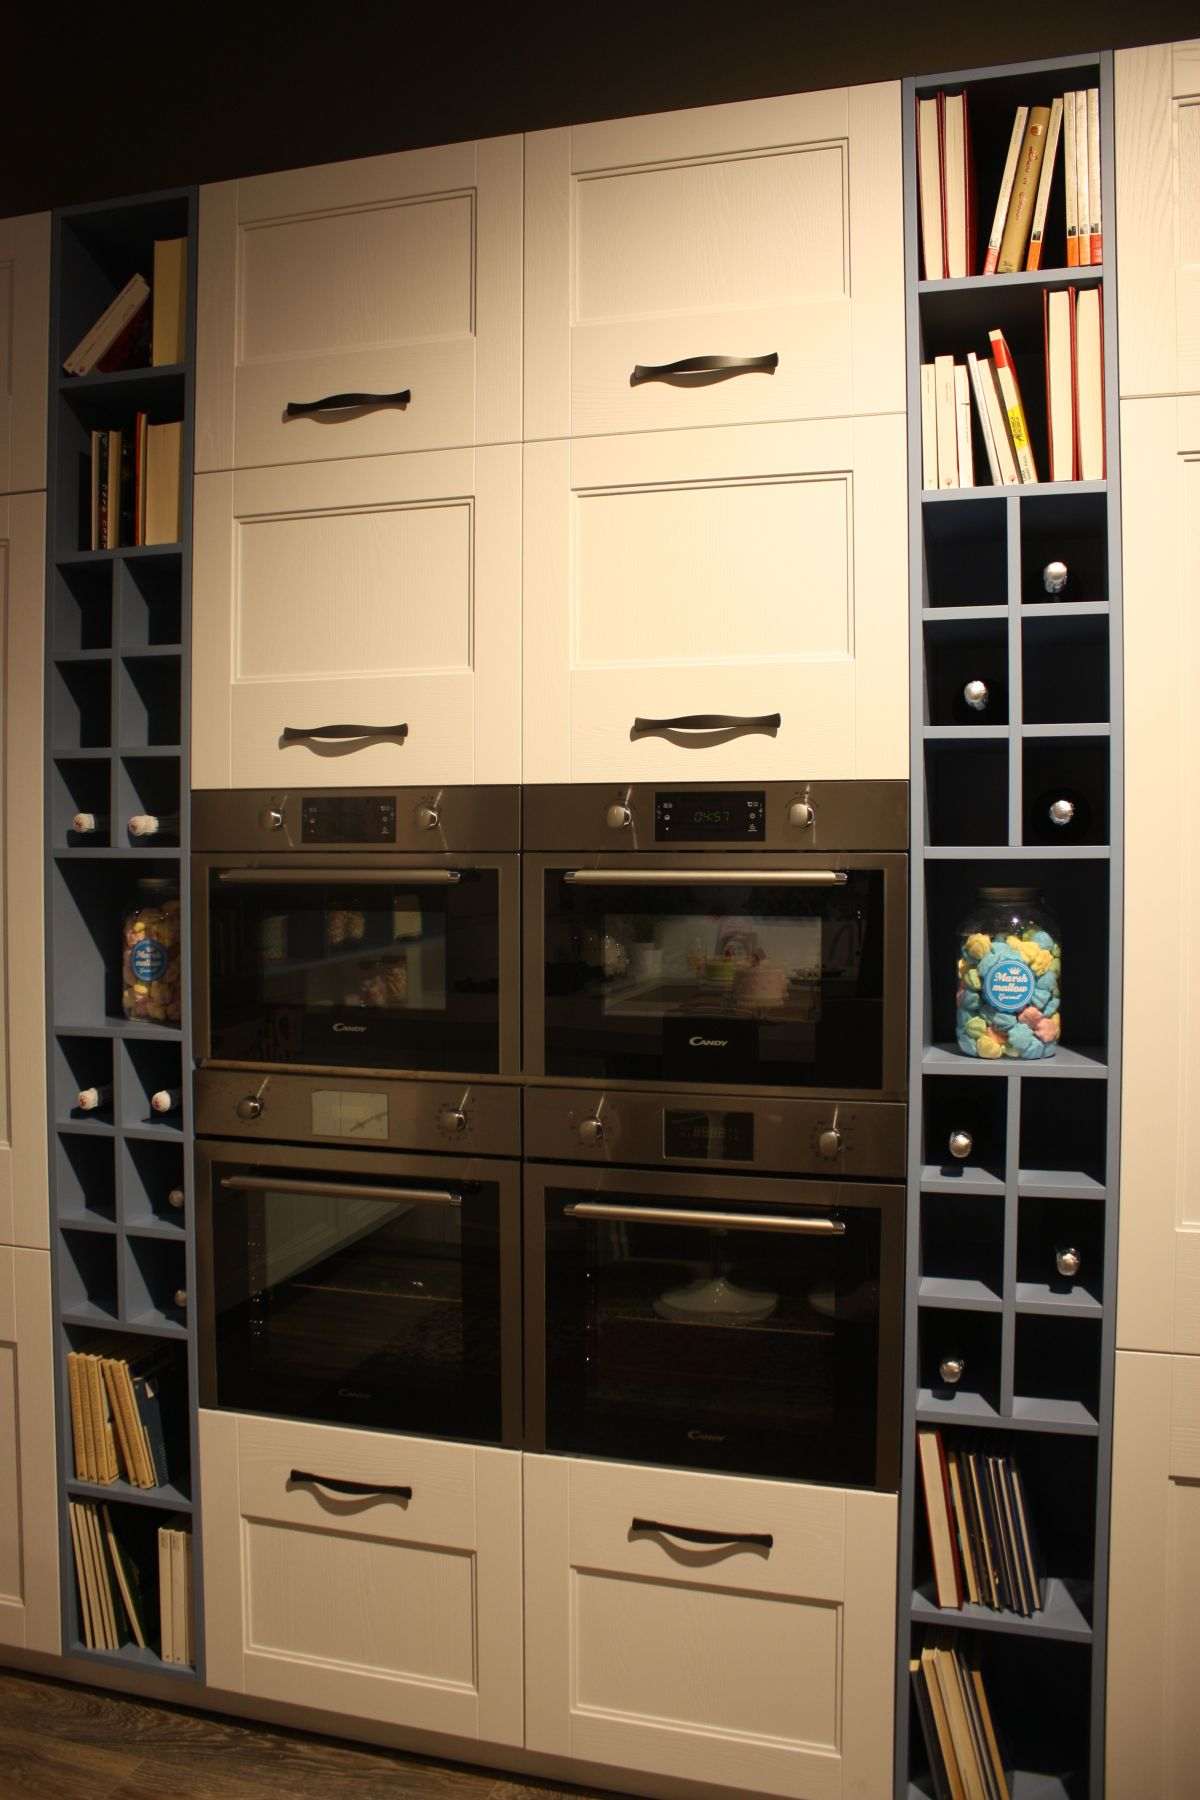 Kitchen Shelves Instead Of Cabinets Open Kitchen Shelving And The Flexibility That Comes With It